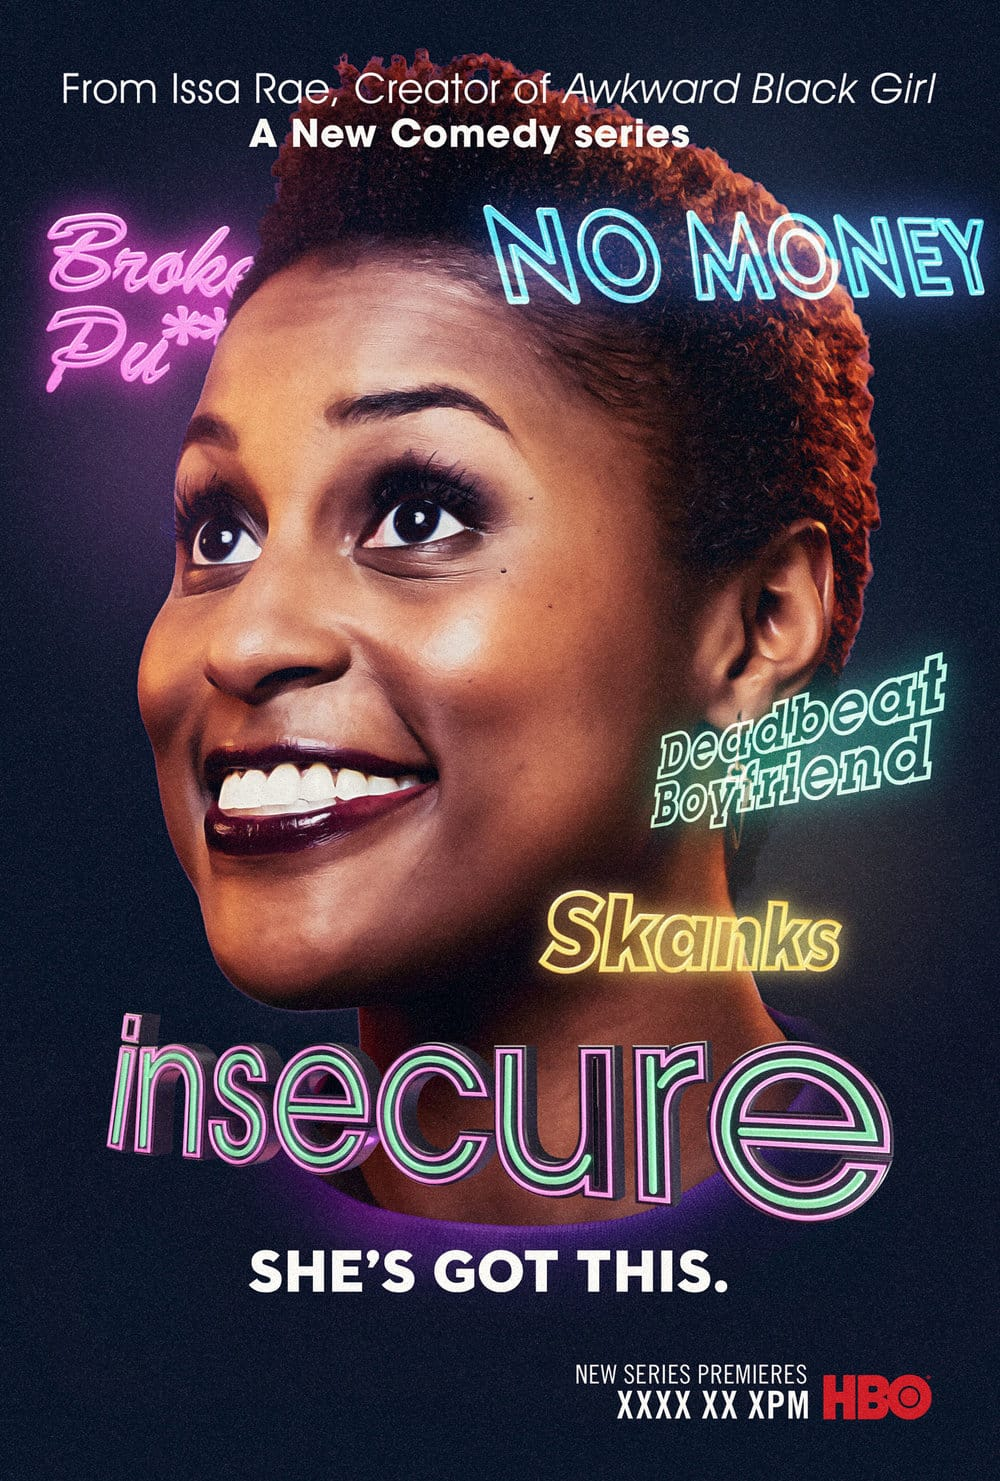 Insecure cast